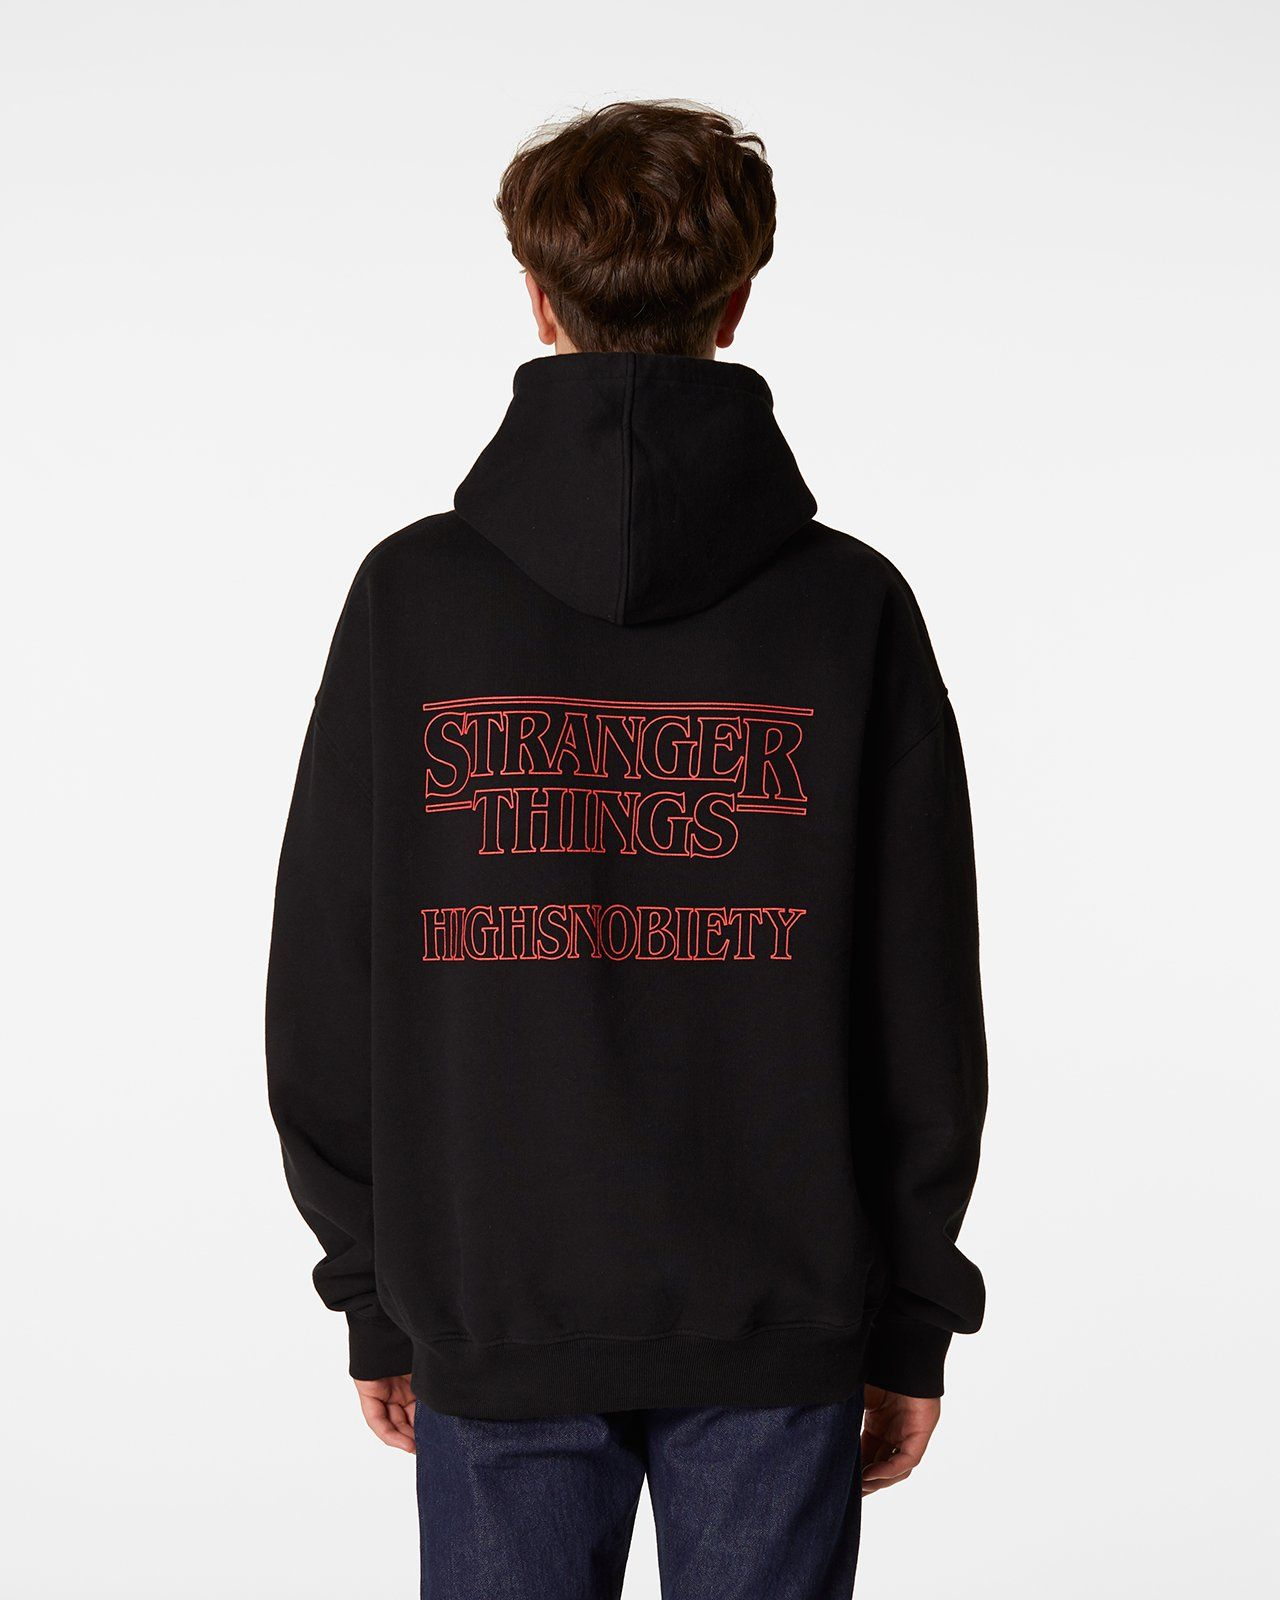 Stranger Things 3 x Highsnobiety Logo Hoodie - Black - Image 7